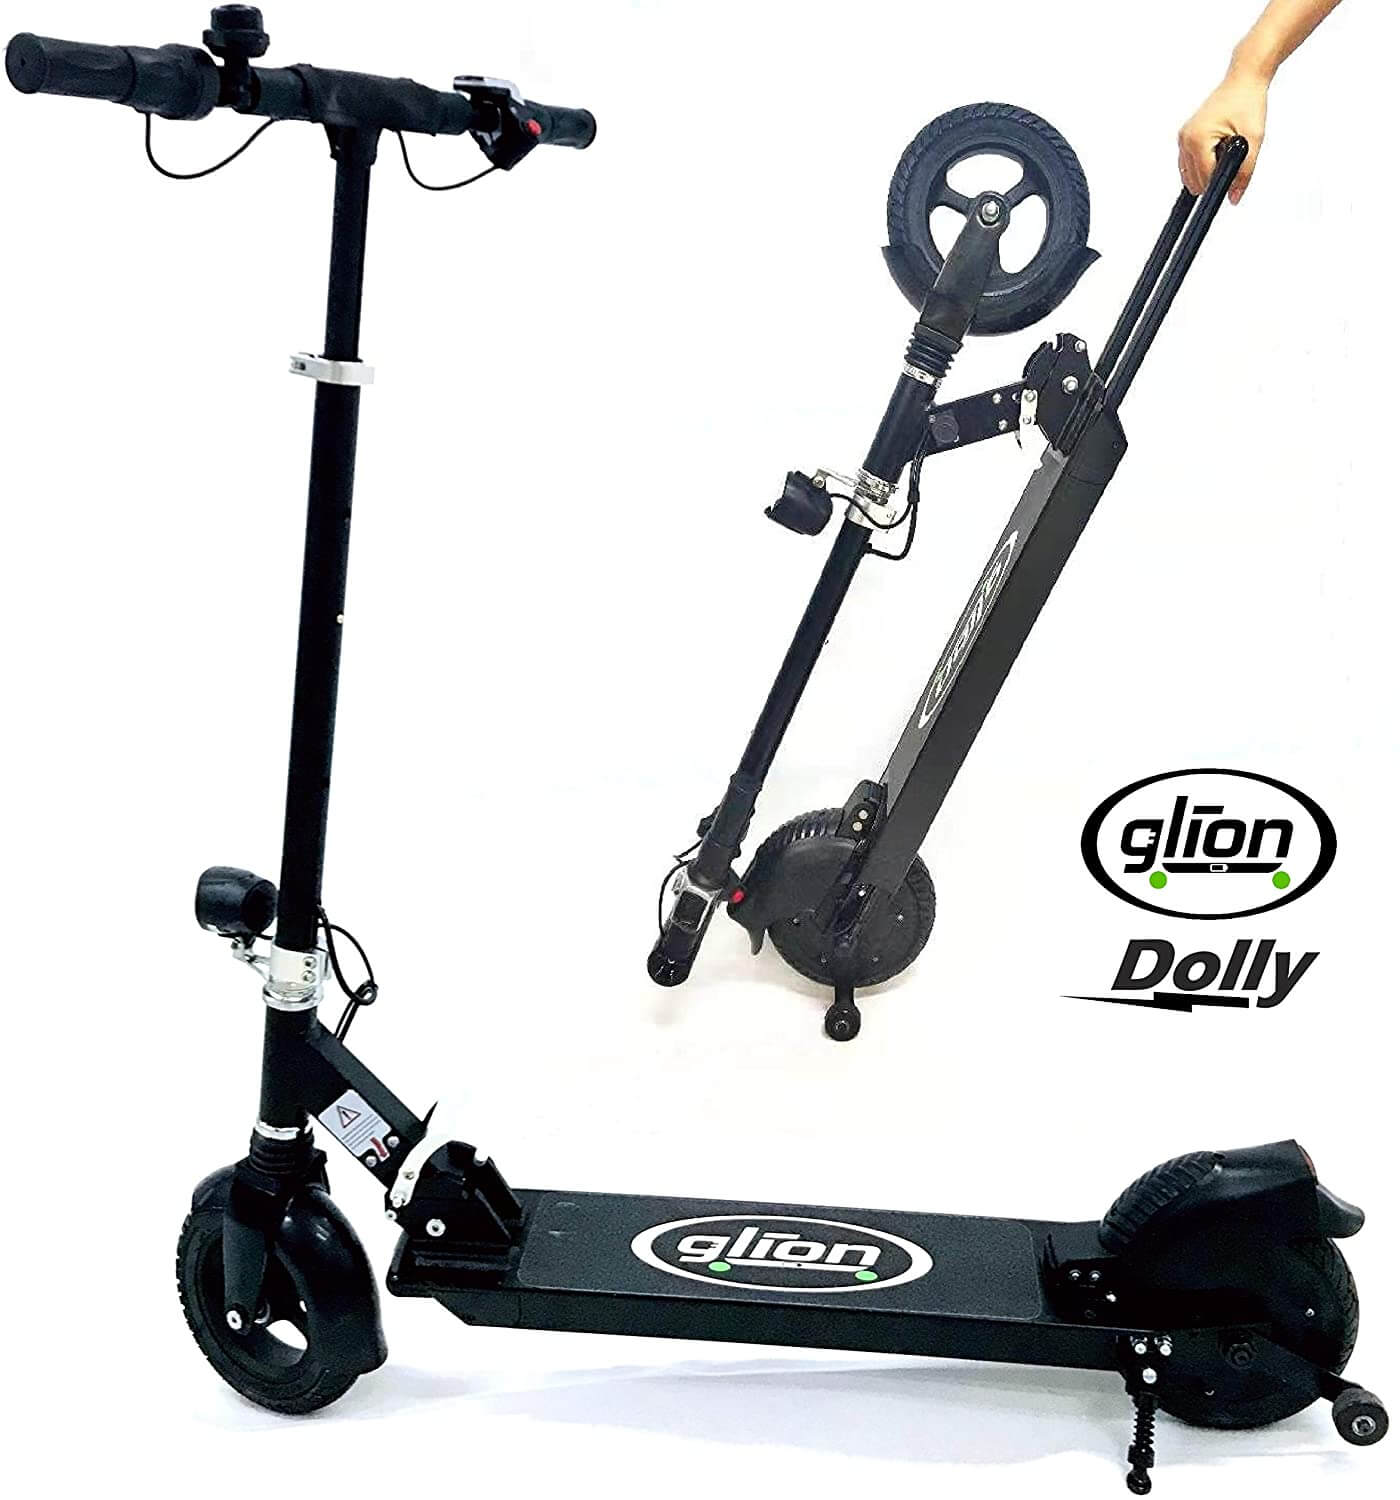 Glion-Dolly-Foldable-Lightweight-Adult-Electric-Scooter